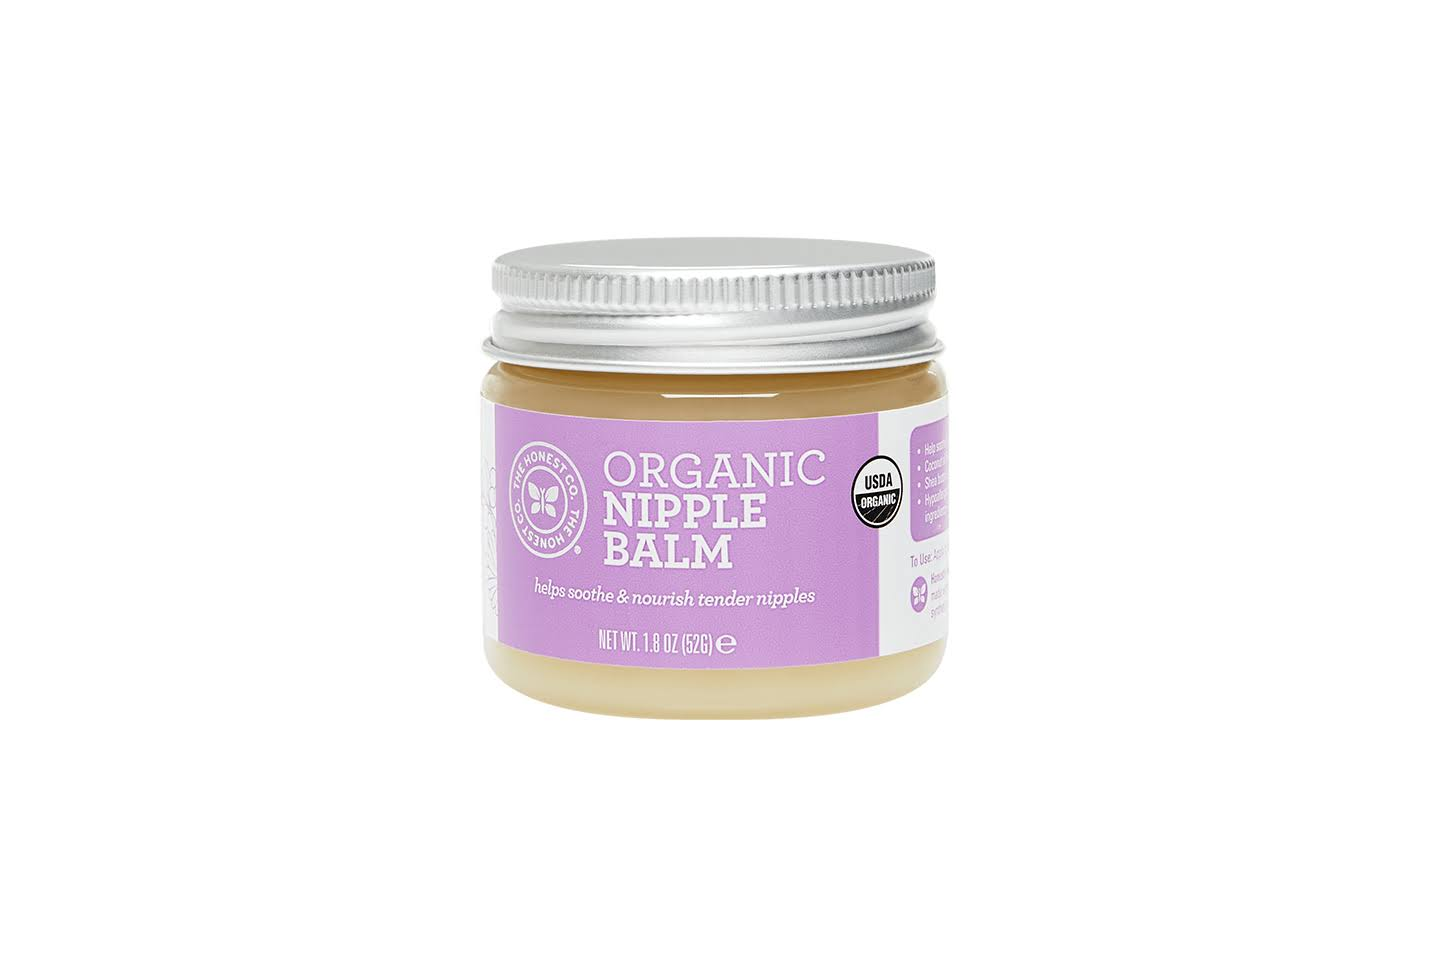 The Honest Company Organic Nipple Balm - 1.8oz